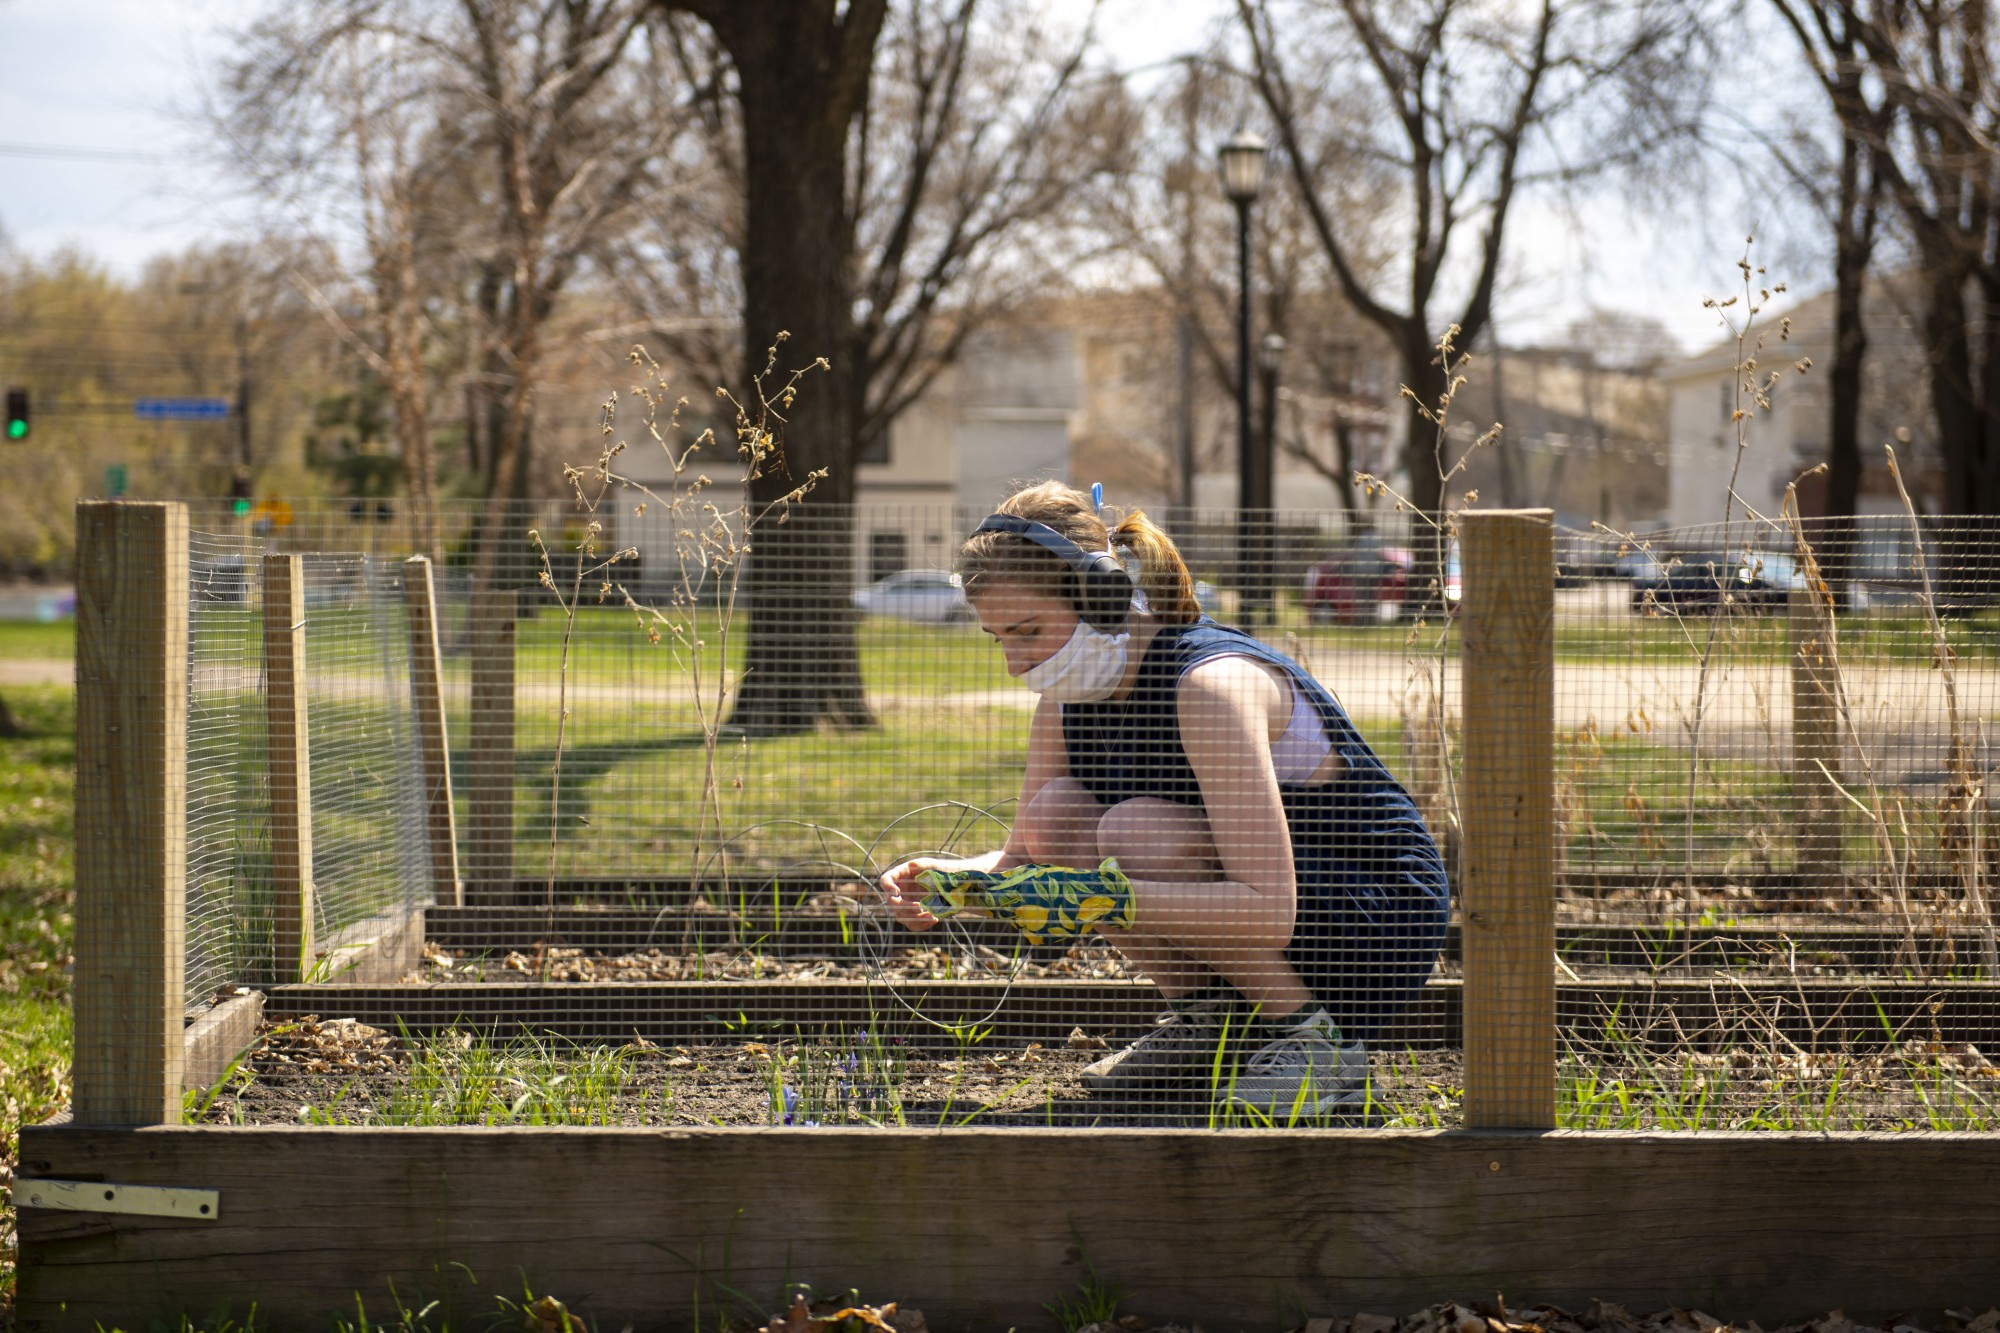 Sydney Murray works to improve a community garden located in Van Cleve Park in Minneapolis on Sunday, April 26.